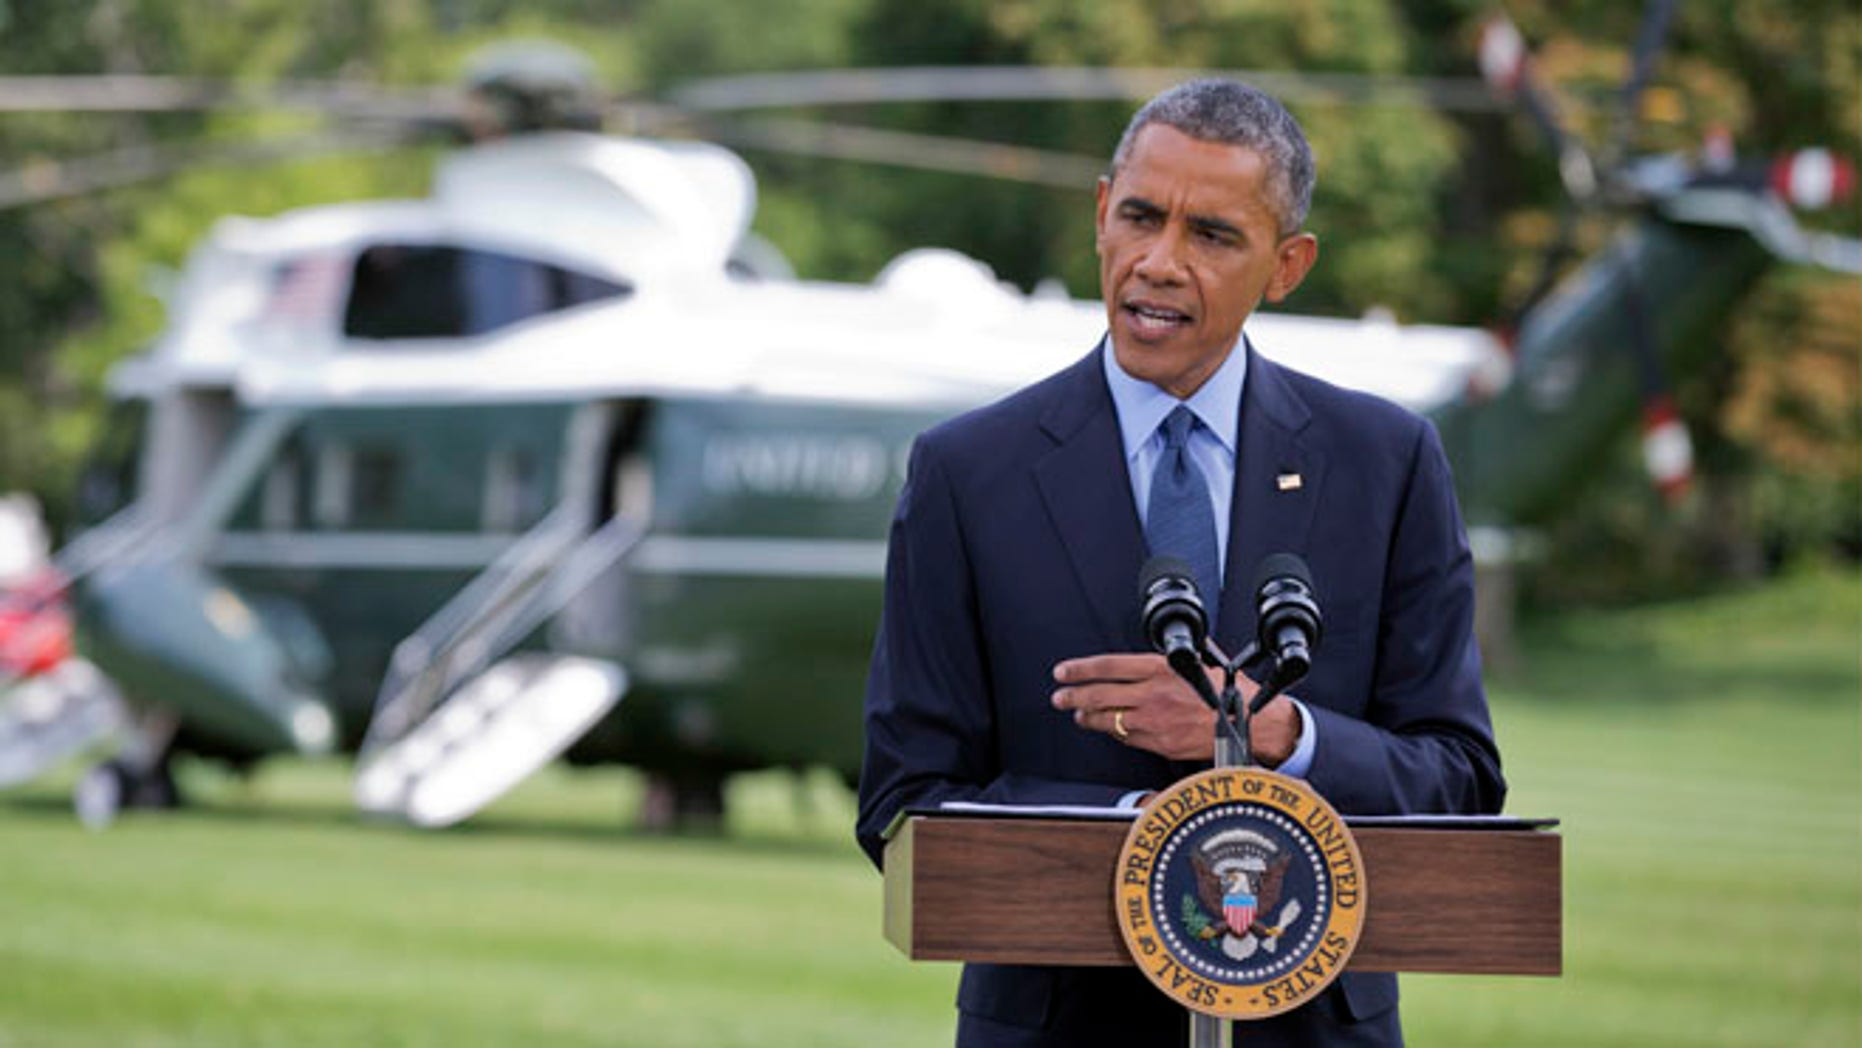 President Barack Obama speaks on the South Lawn of the White House in Washington, Tuesday, July 29, 2014.